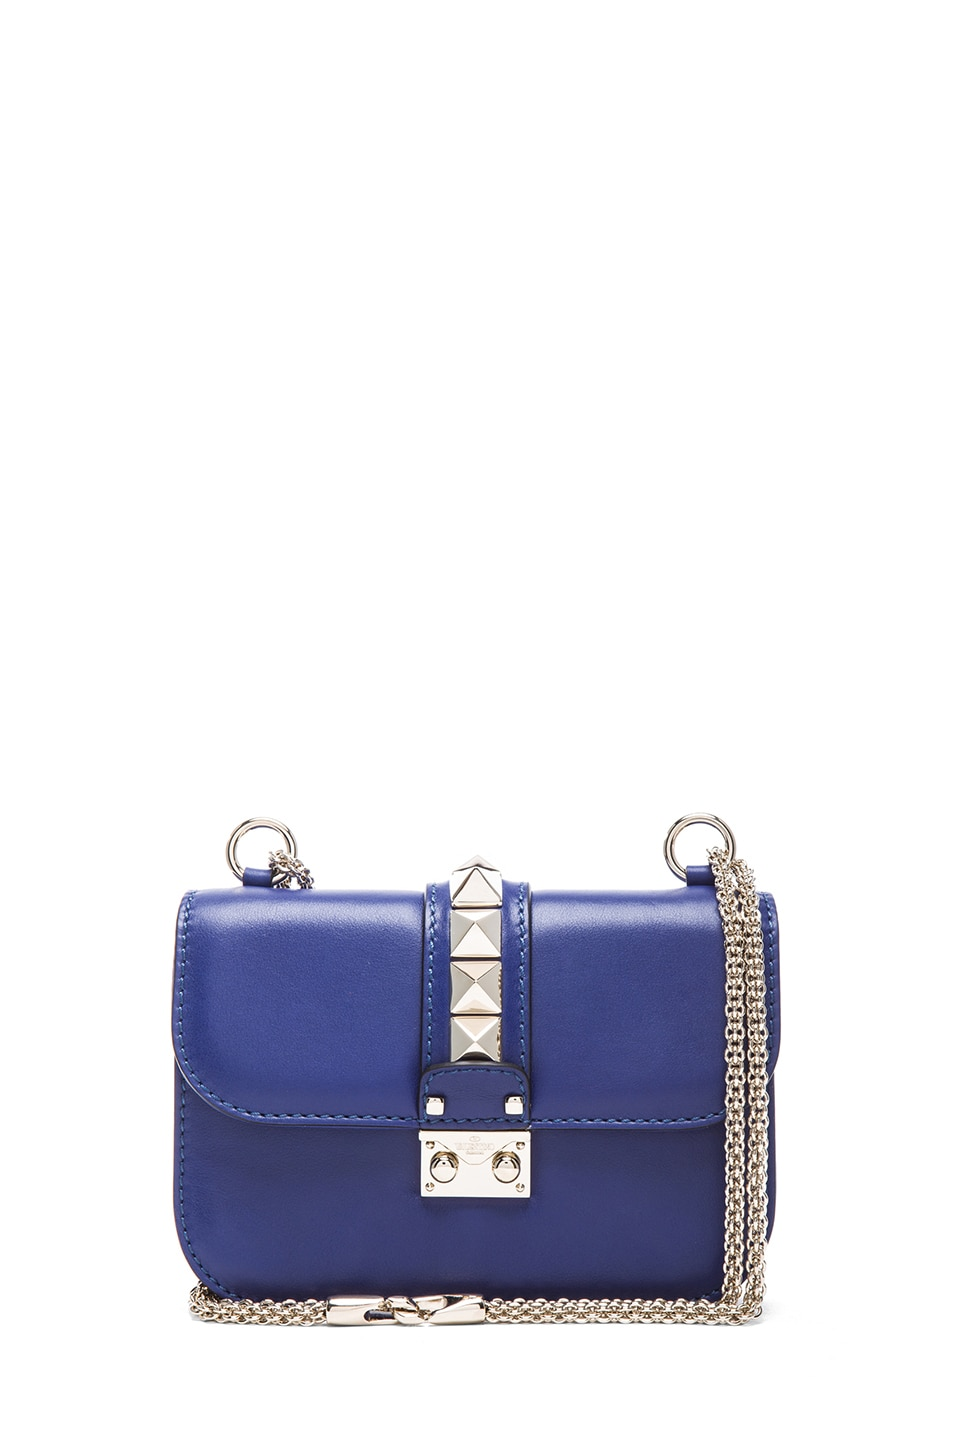 Image 1 of Valentino Small Lock Flap Bag in Blue China